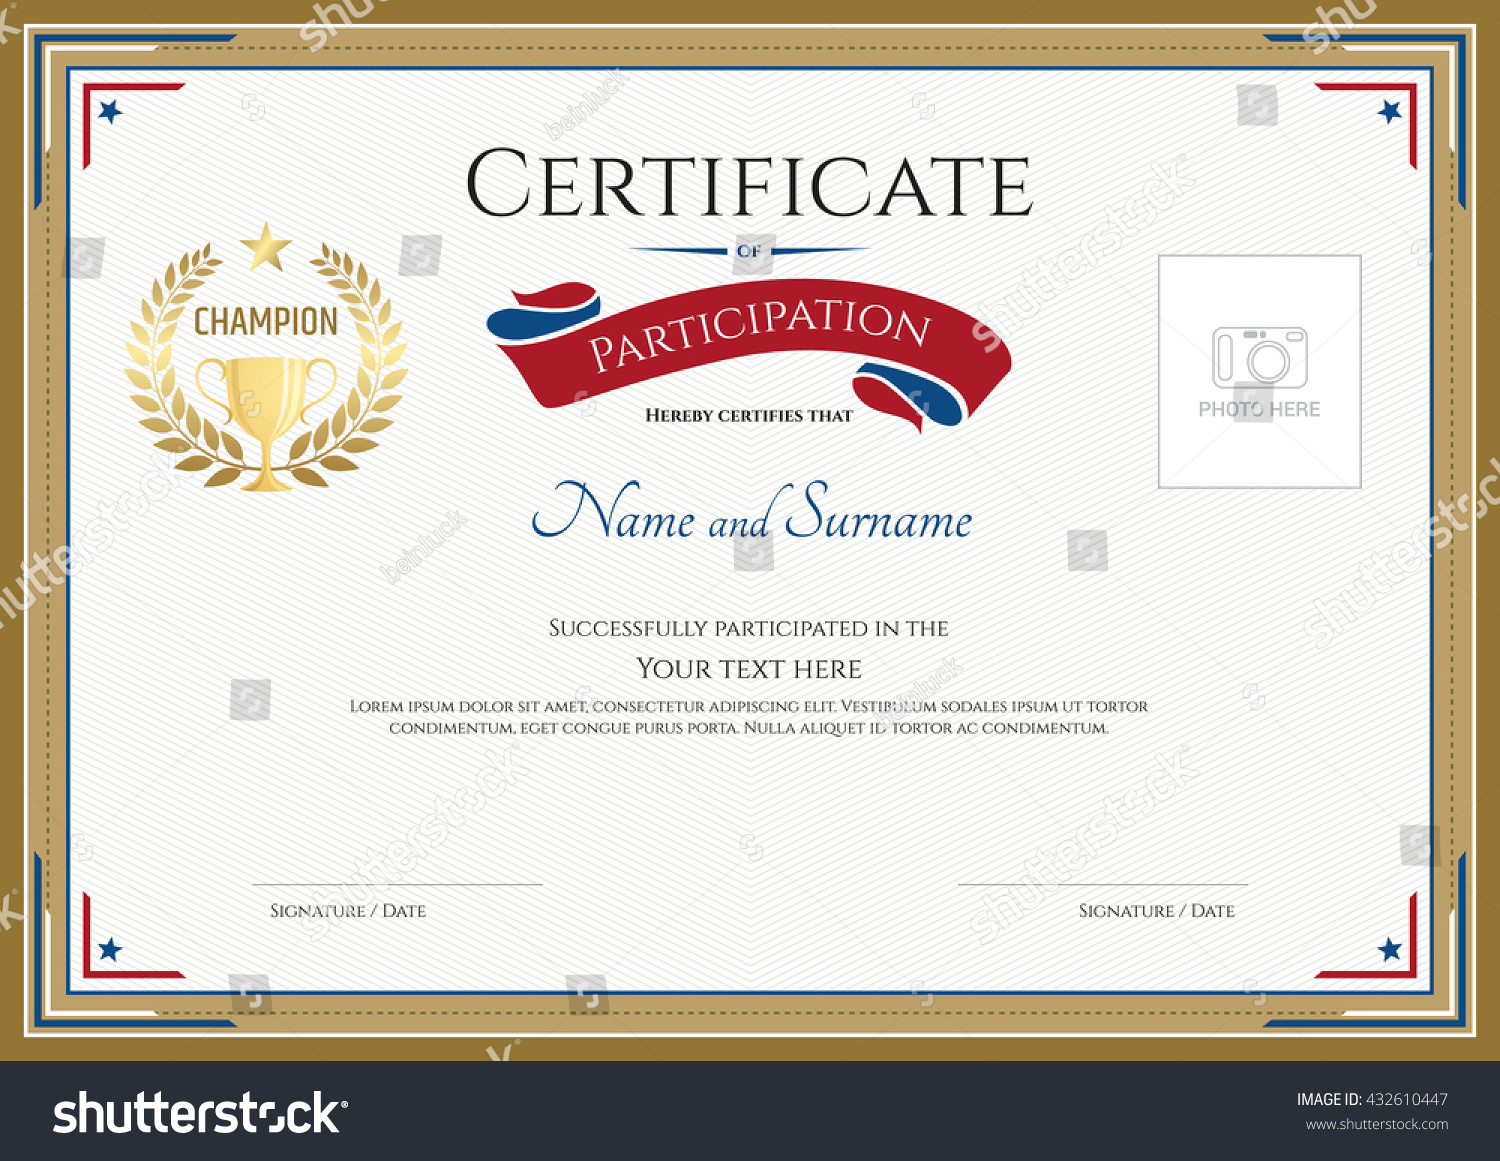 design of certificate of participation – Certificate of Participation Template Word